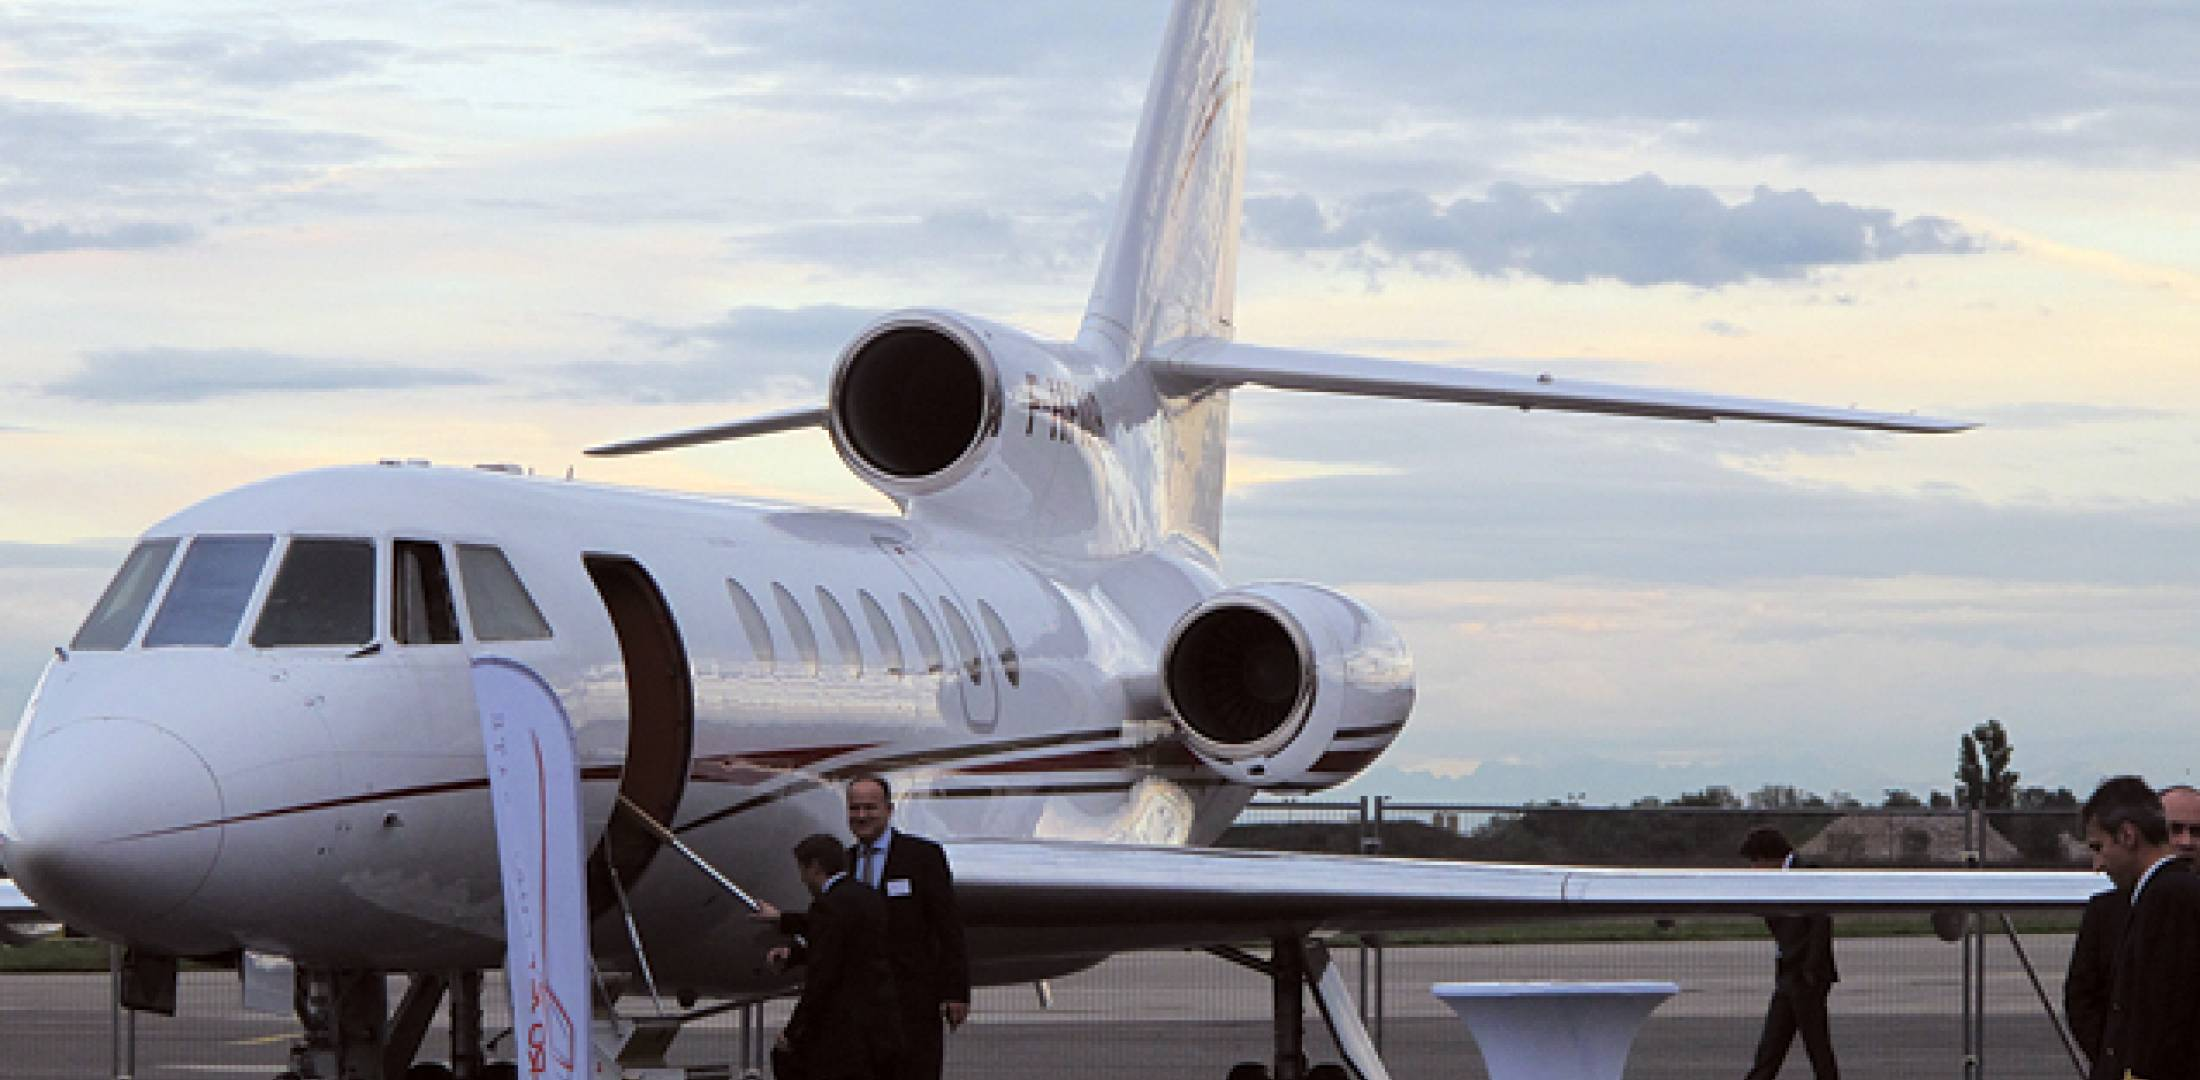 Lyon Bron airport hosted an educational event last fall to show local company executives the value of business aviation.